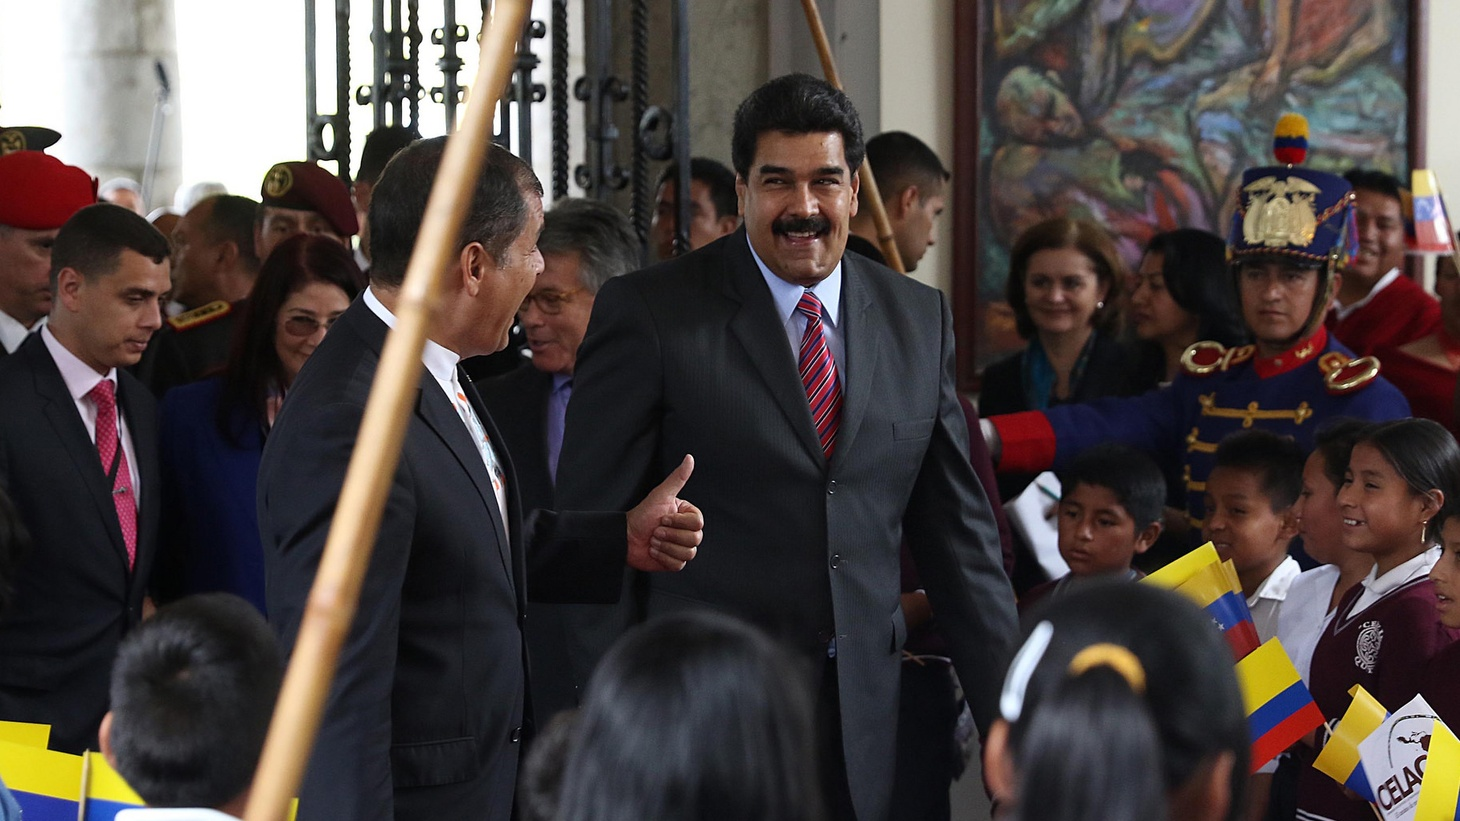 In Venezuela, an economic crisis is causing a public health crisis and President Nicolas Maduro has imposed a state of emergency amid real concern that his government is on the verge of collapse. Nicholas Casey is in Caracas, reporting for the  New York Times . 